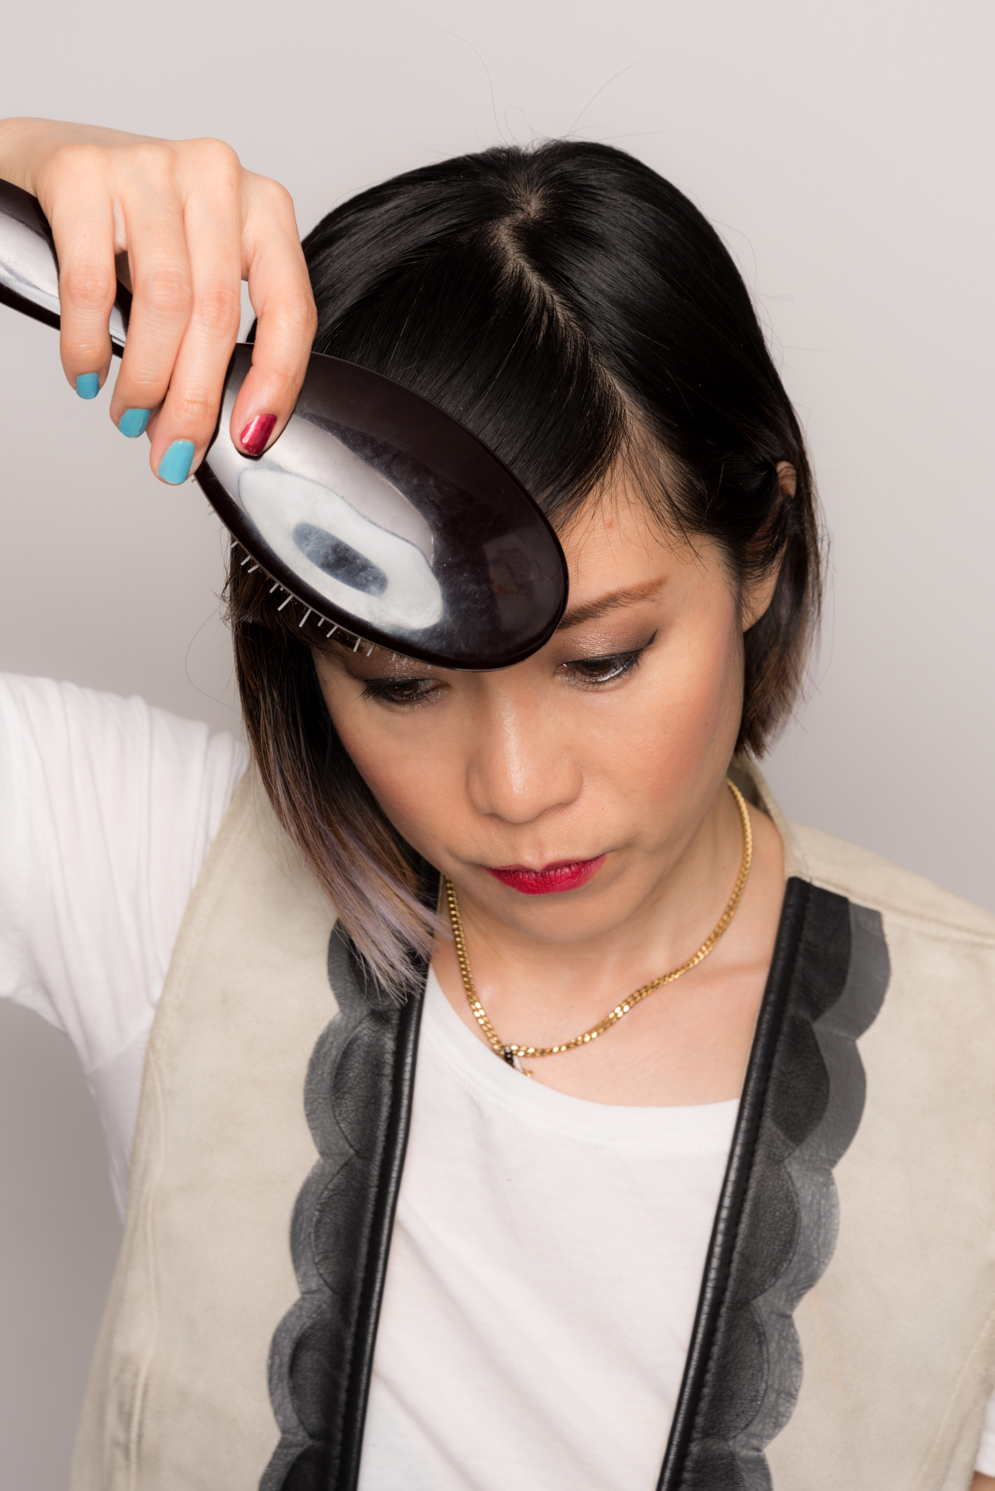 ROCK MAMA NYC LIFESTYLE BLOG - HOW TO STYLE SIDE SWEPT BANGS WITH A FLAT IRON